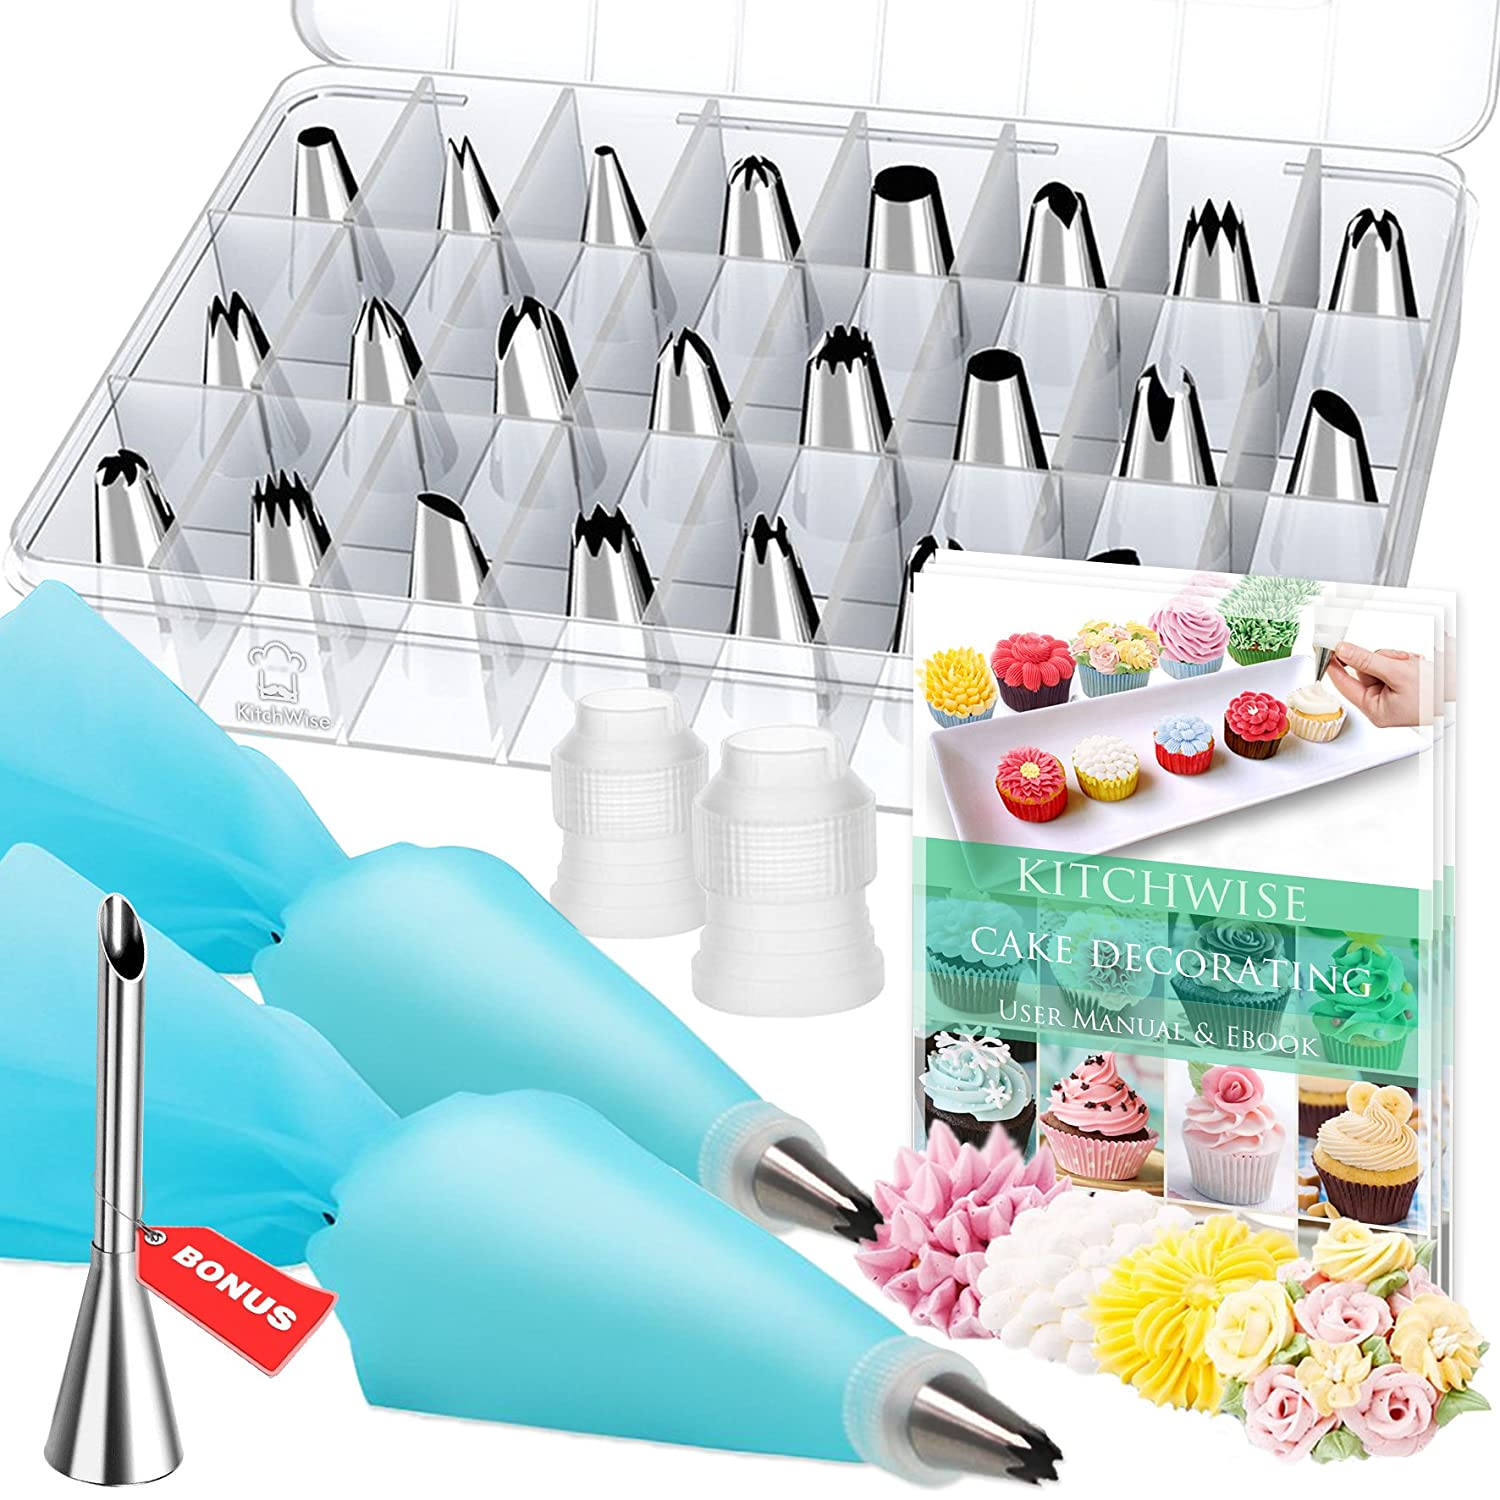 Cake Decorating Supplies Kit Tips 30 Pieces, 24 Stainless Steel Icing Tip set, 2 Reusable Coupler and 2 Silicone Pastry Bags Kitchwise